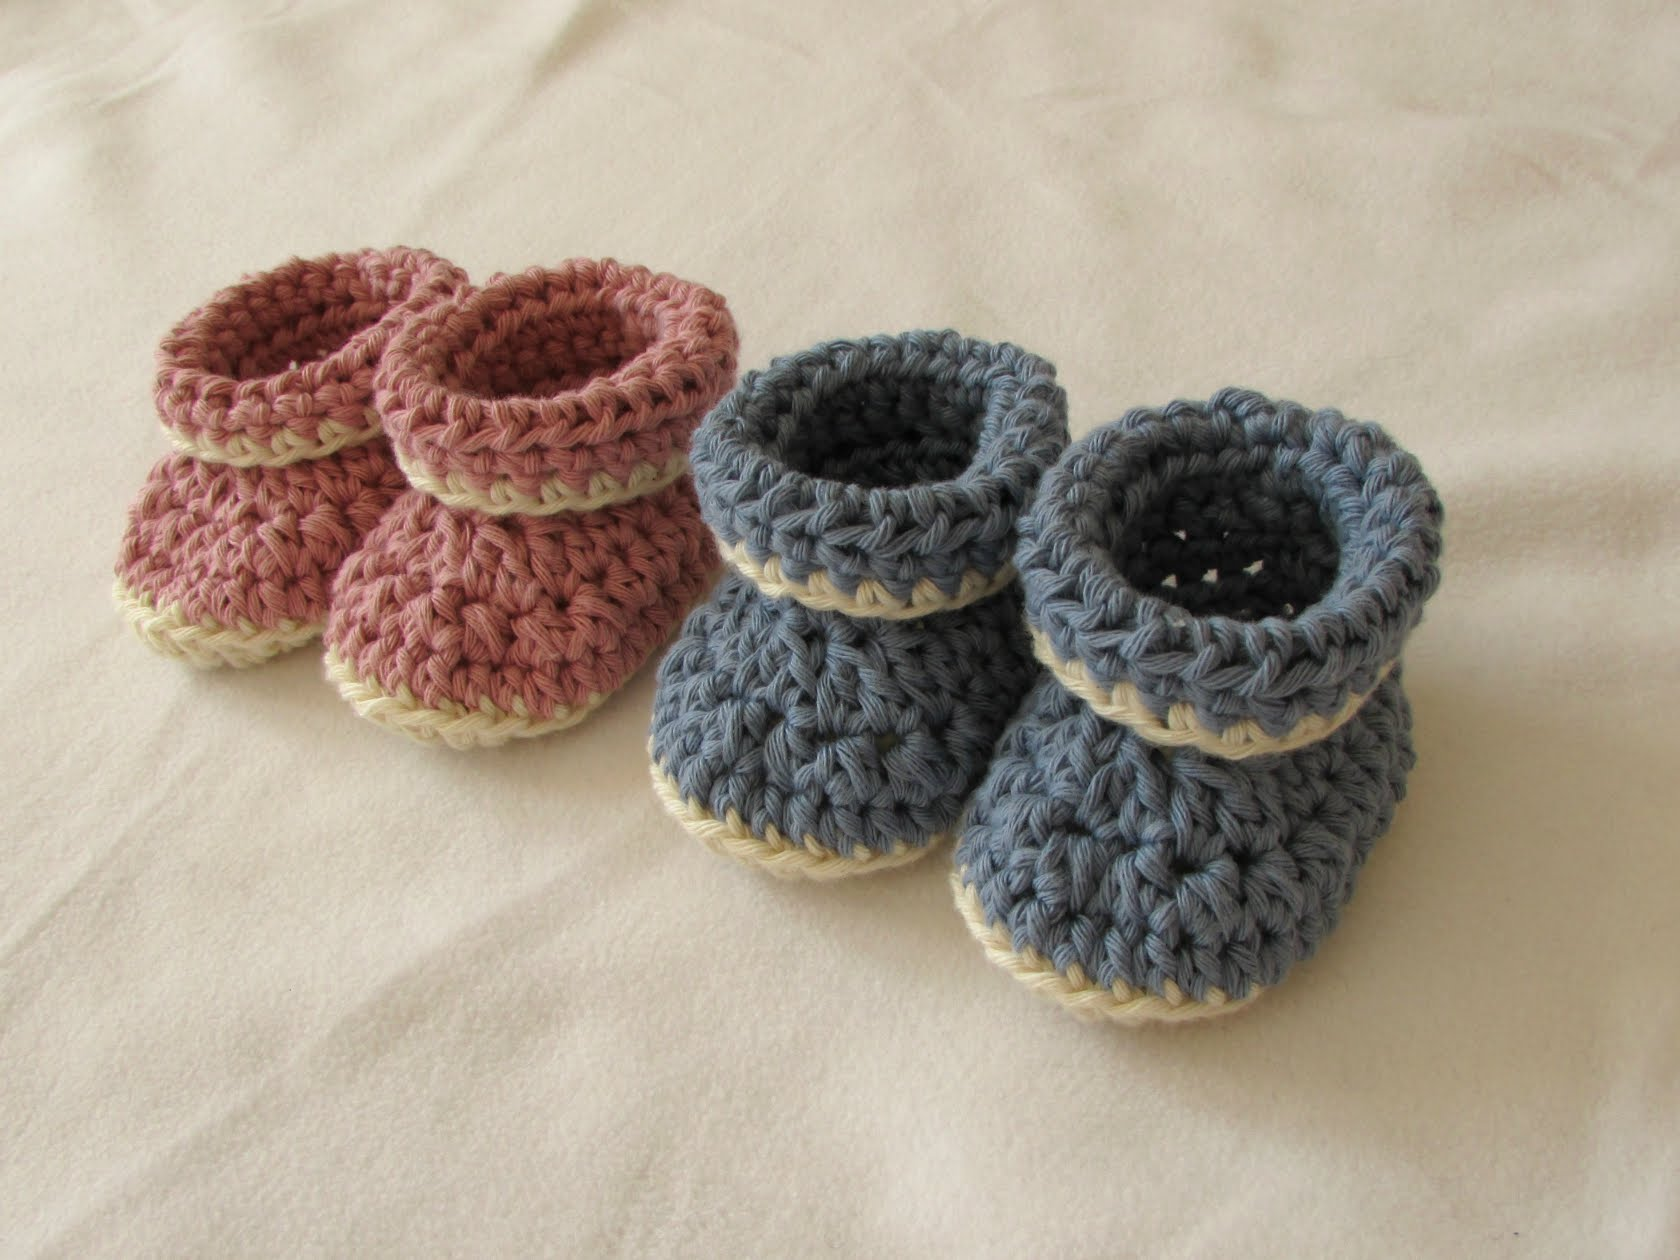 crochet baby booties very easy crochet cuffed baby booties tutorial - roll top baby shoes for wtccyhg